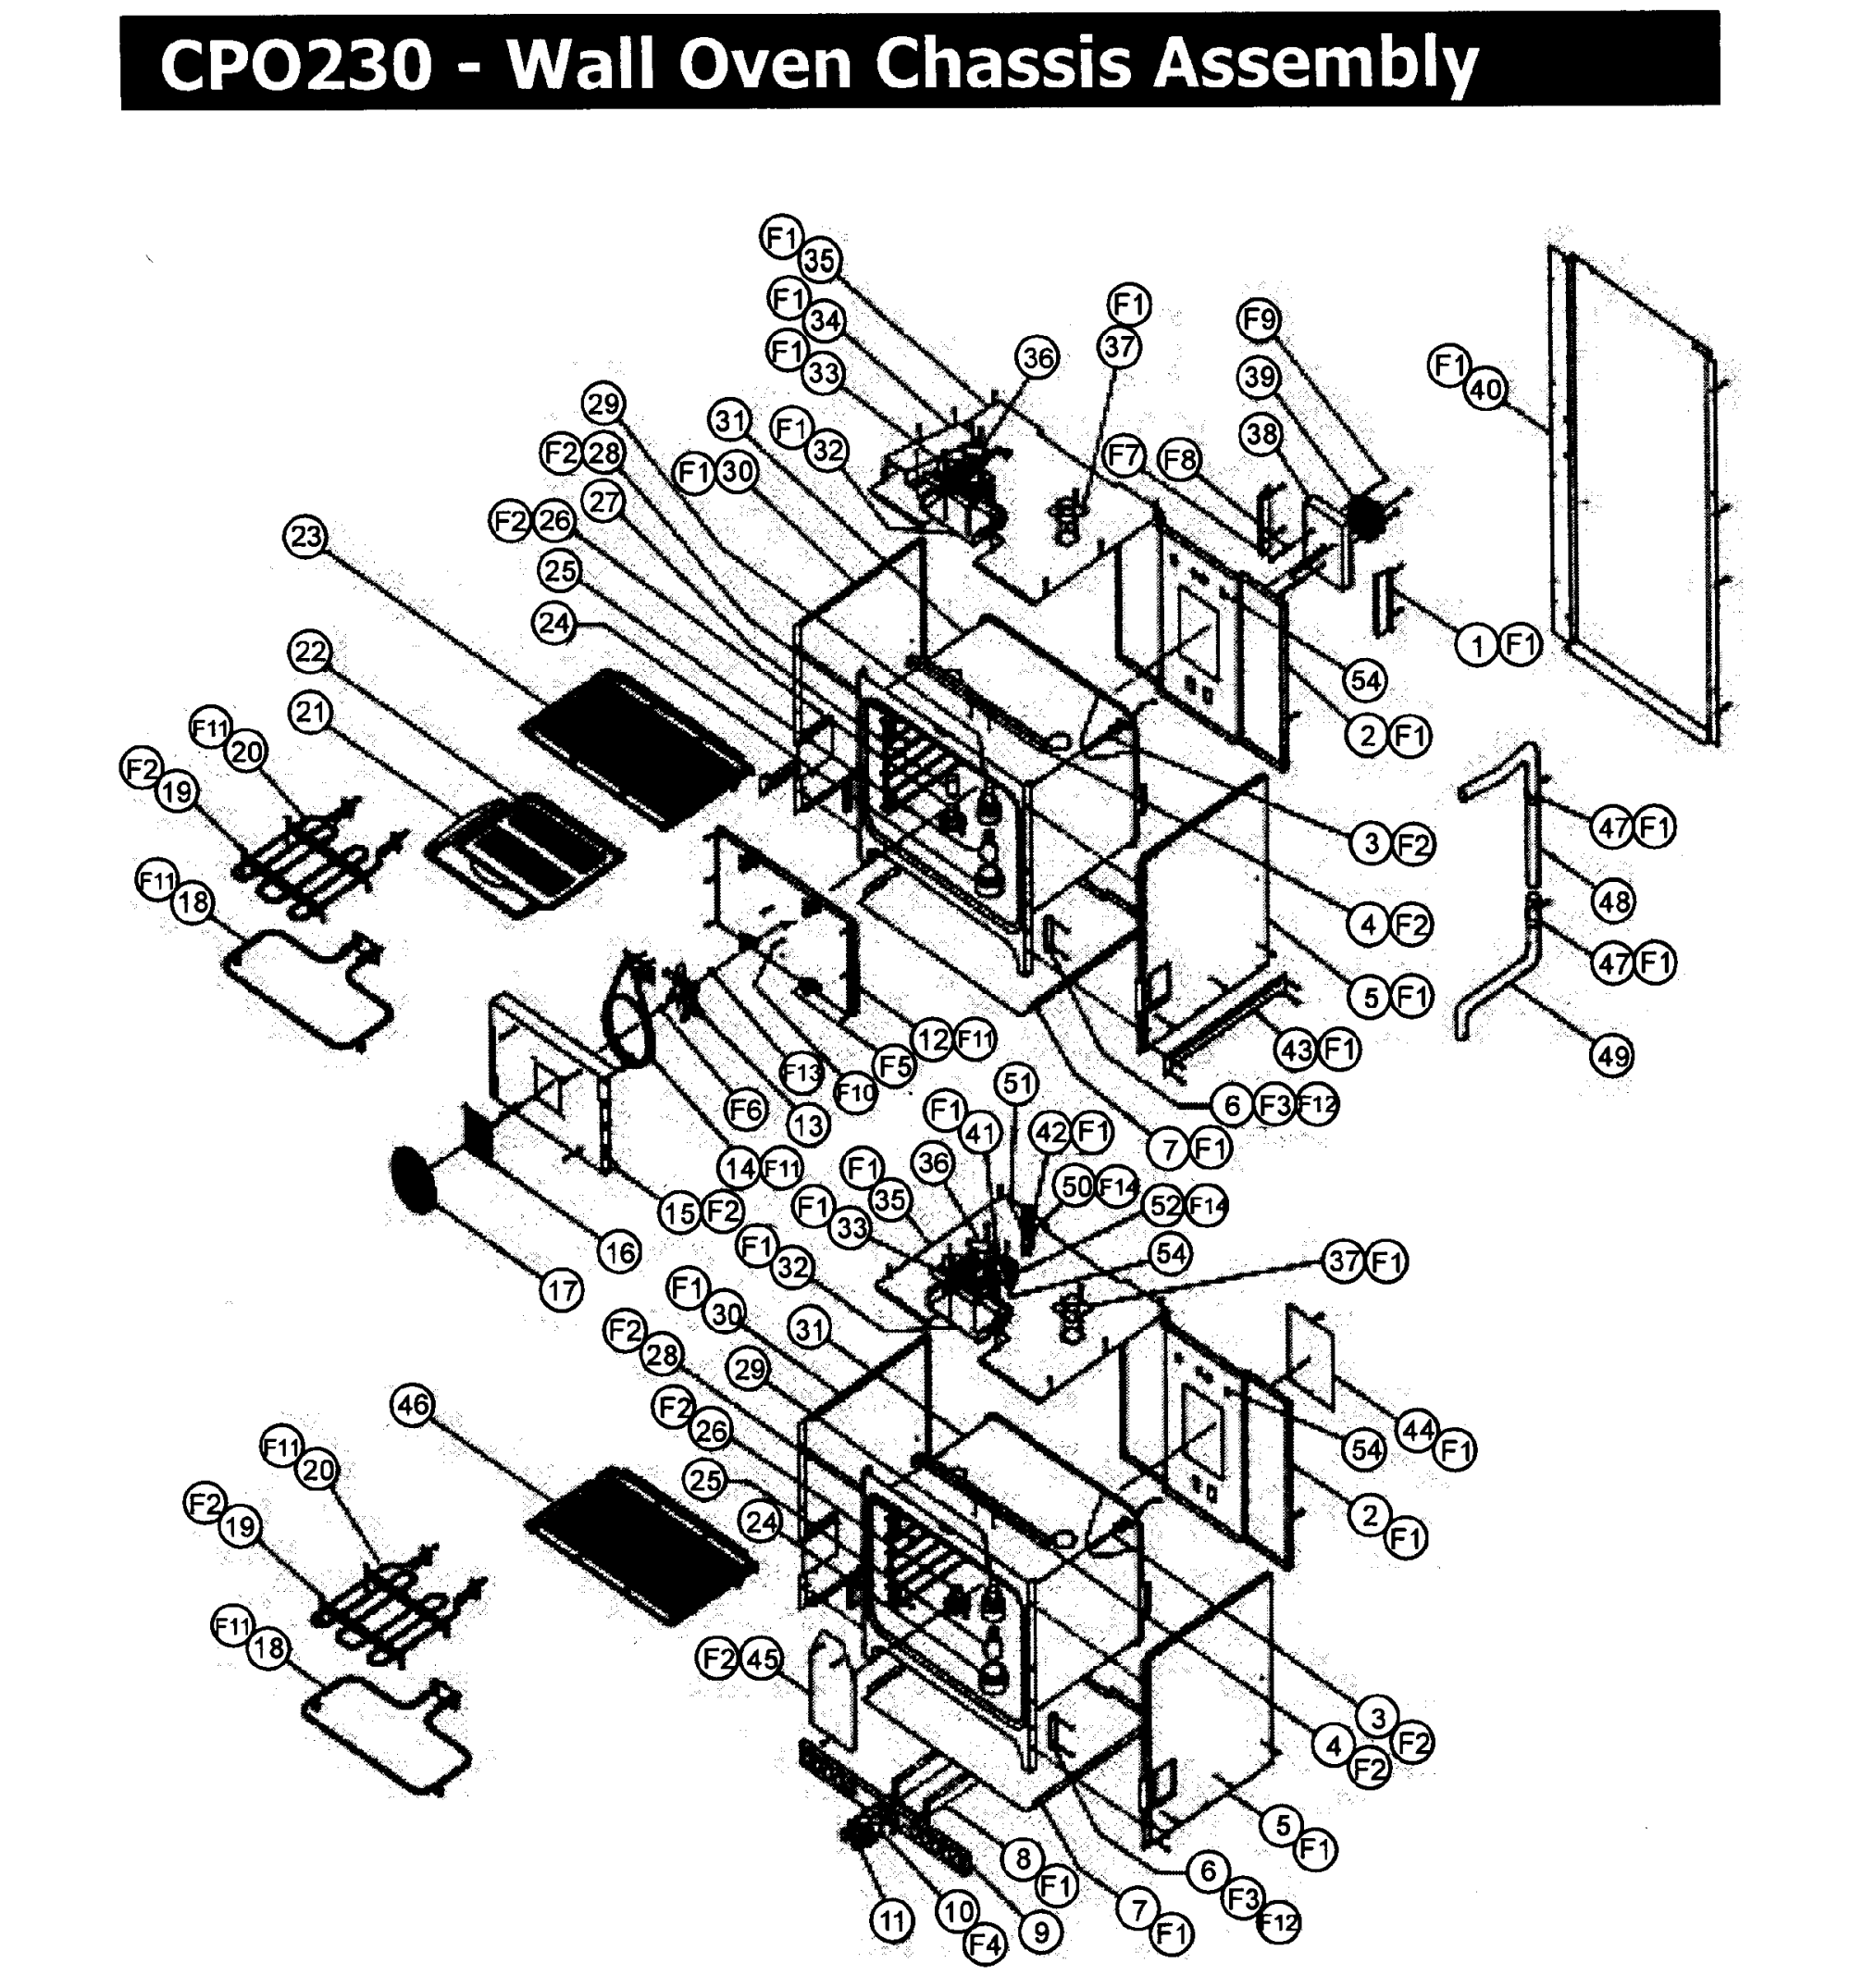 hight resolution of cpo230 wall oven chassis assy parts diagram